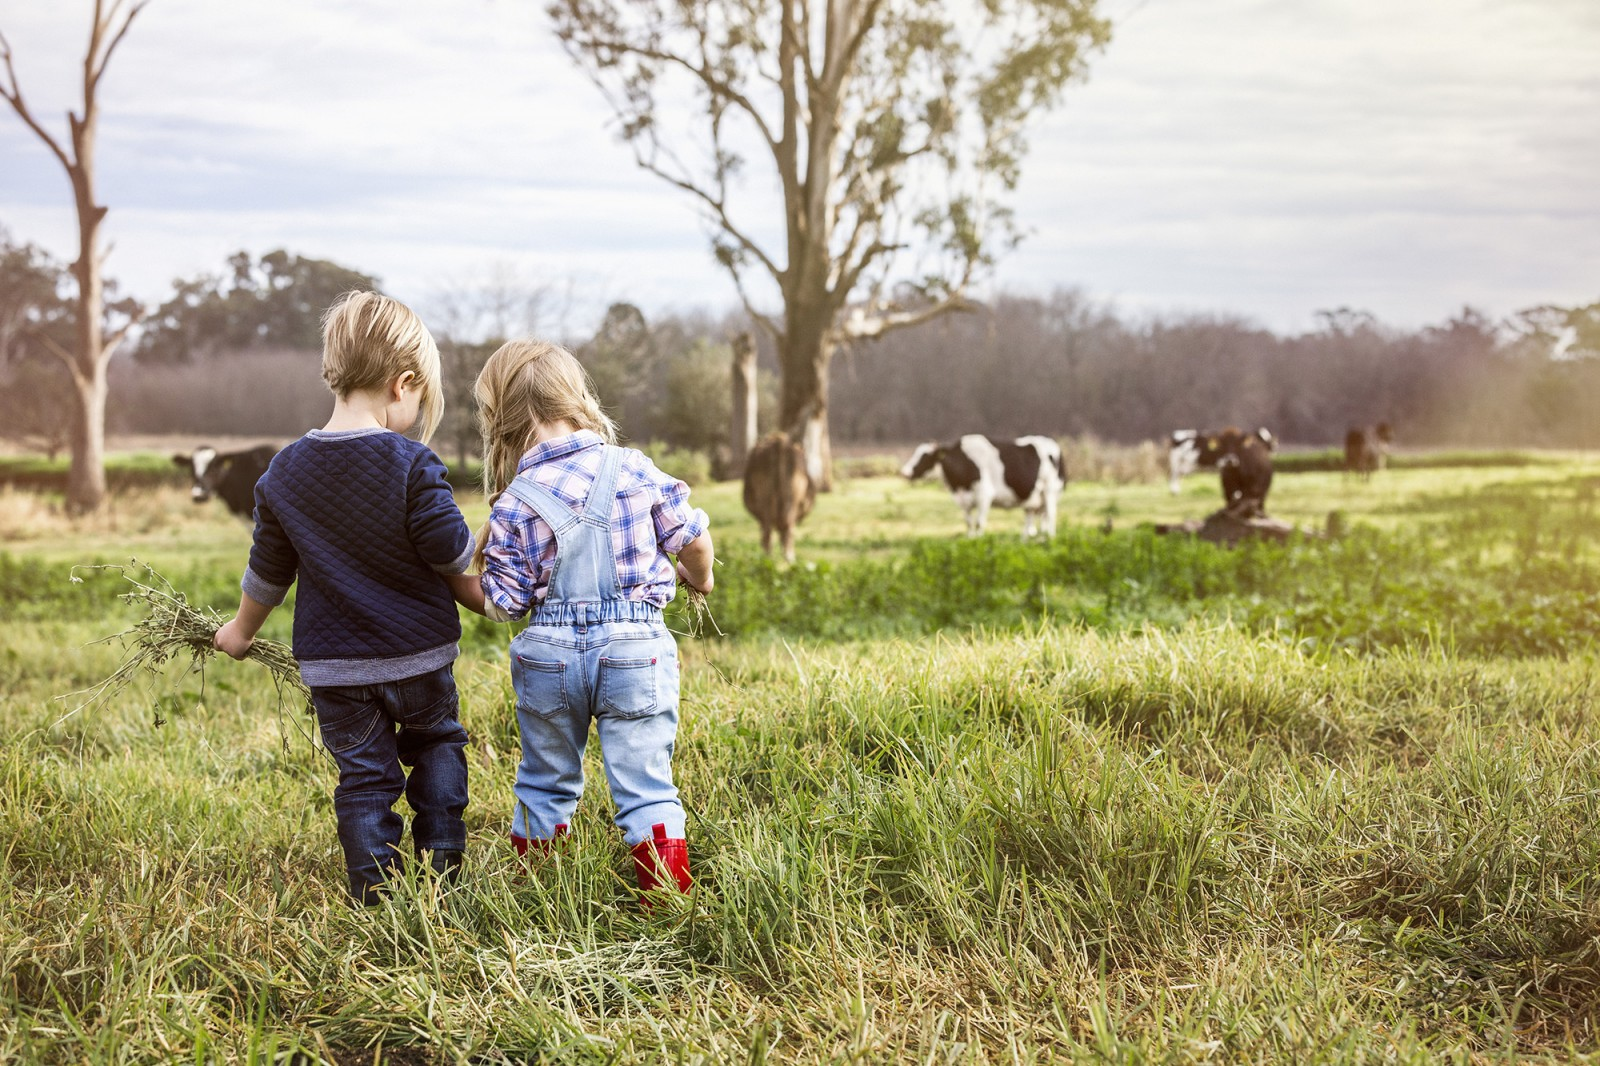 Michelle Young, Sydneys leading kids lifestyle and fashion photographer, photographs the latest lifestyle advertising campaign for Bellamys Organic. The kids lifestyle photography by Michelle Young...